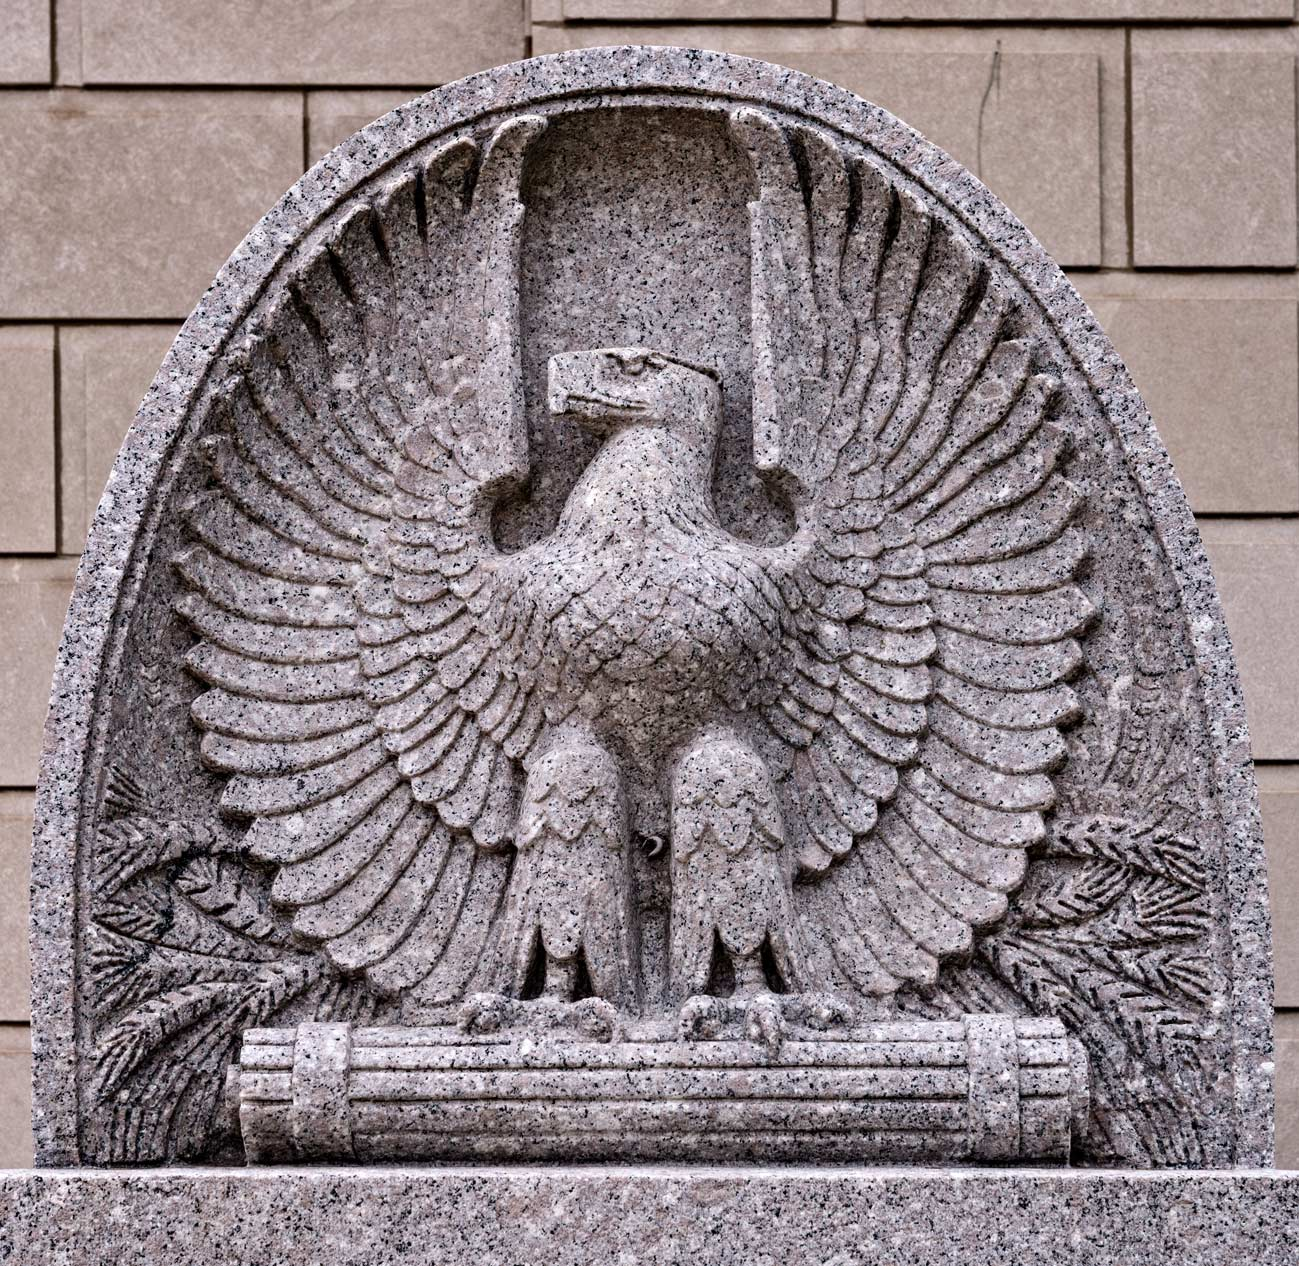 Eagle at Federal Building and U.S. Court House, Peoria, Illinois